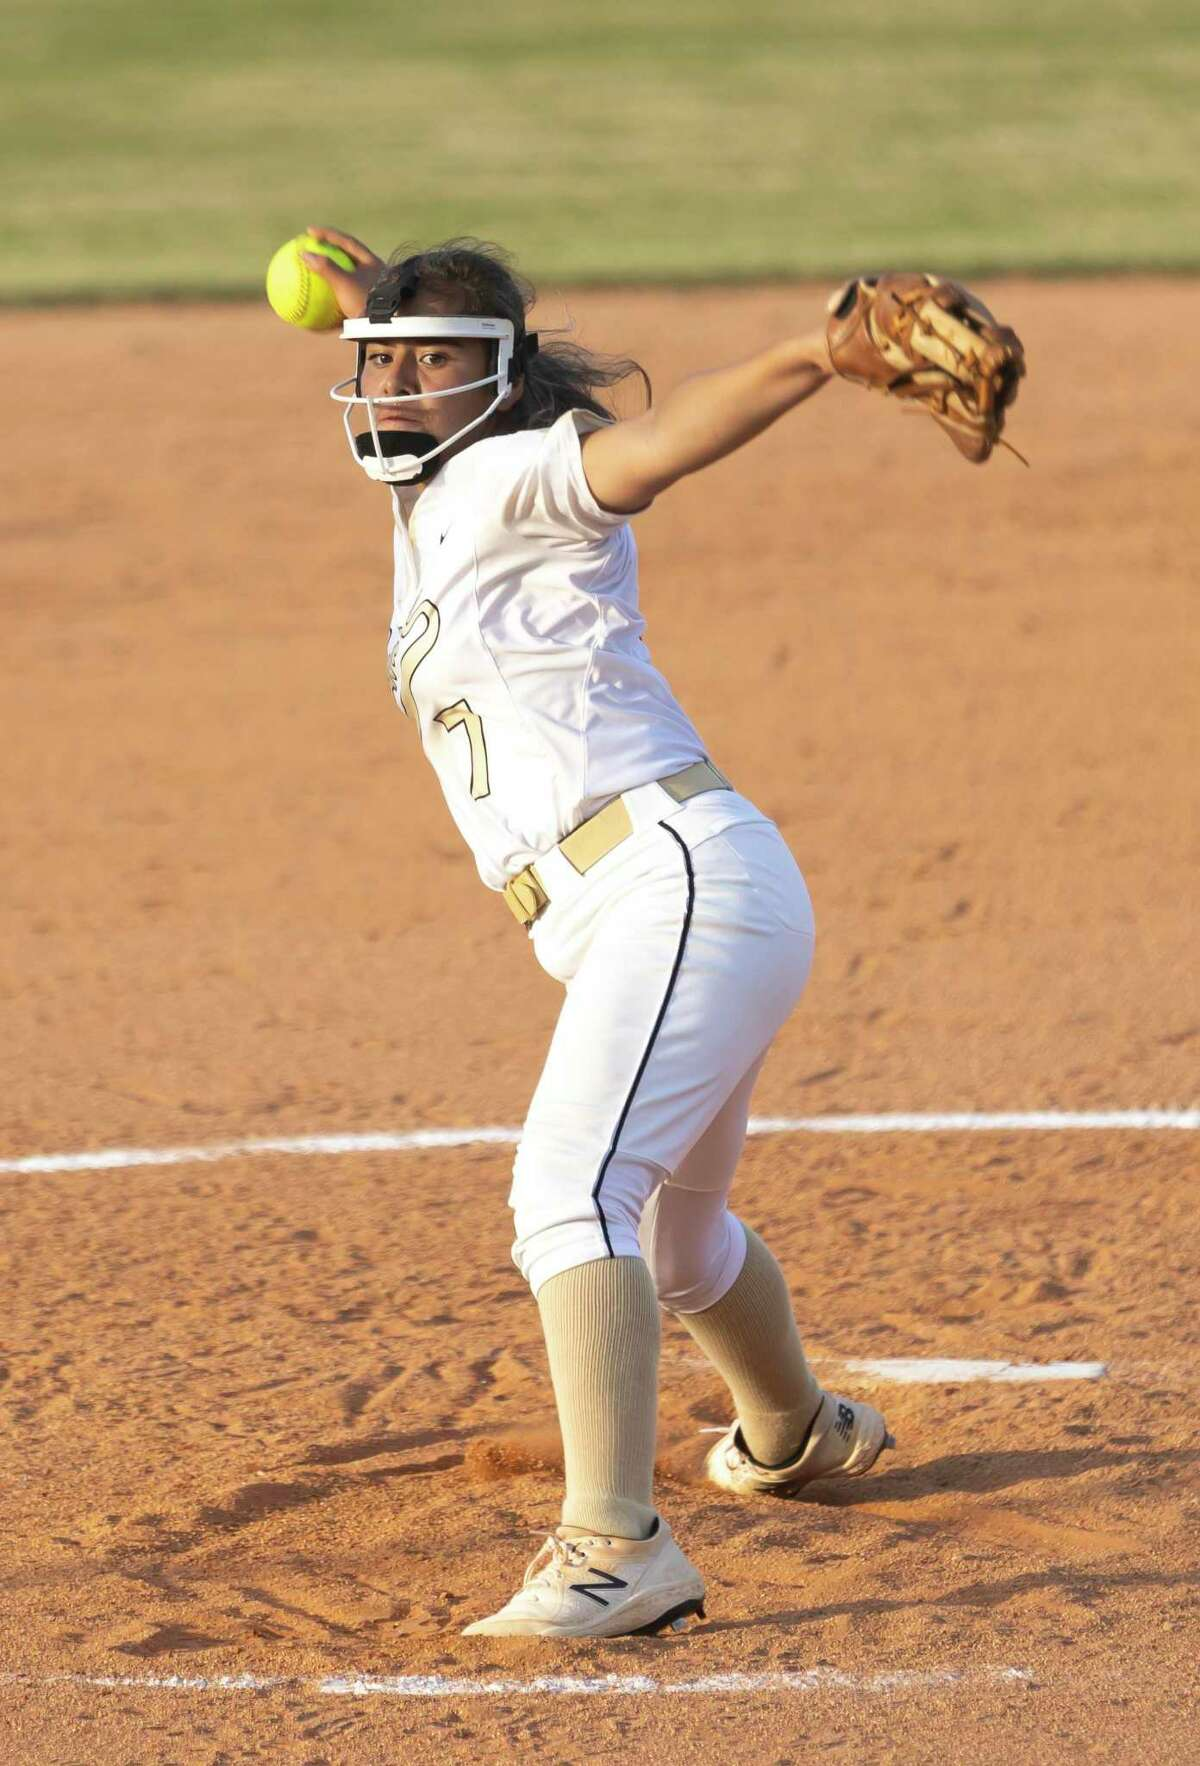 Conroe pitcher Izzy Lozada (7) pitches during the third inning of a District 13-6A softball game against Willis at Conroe High School on Tuesday, April 6, 2021, in Conroe.